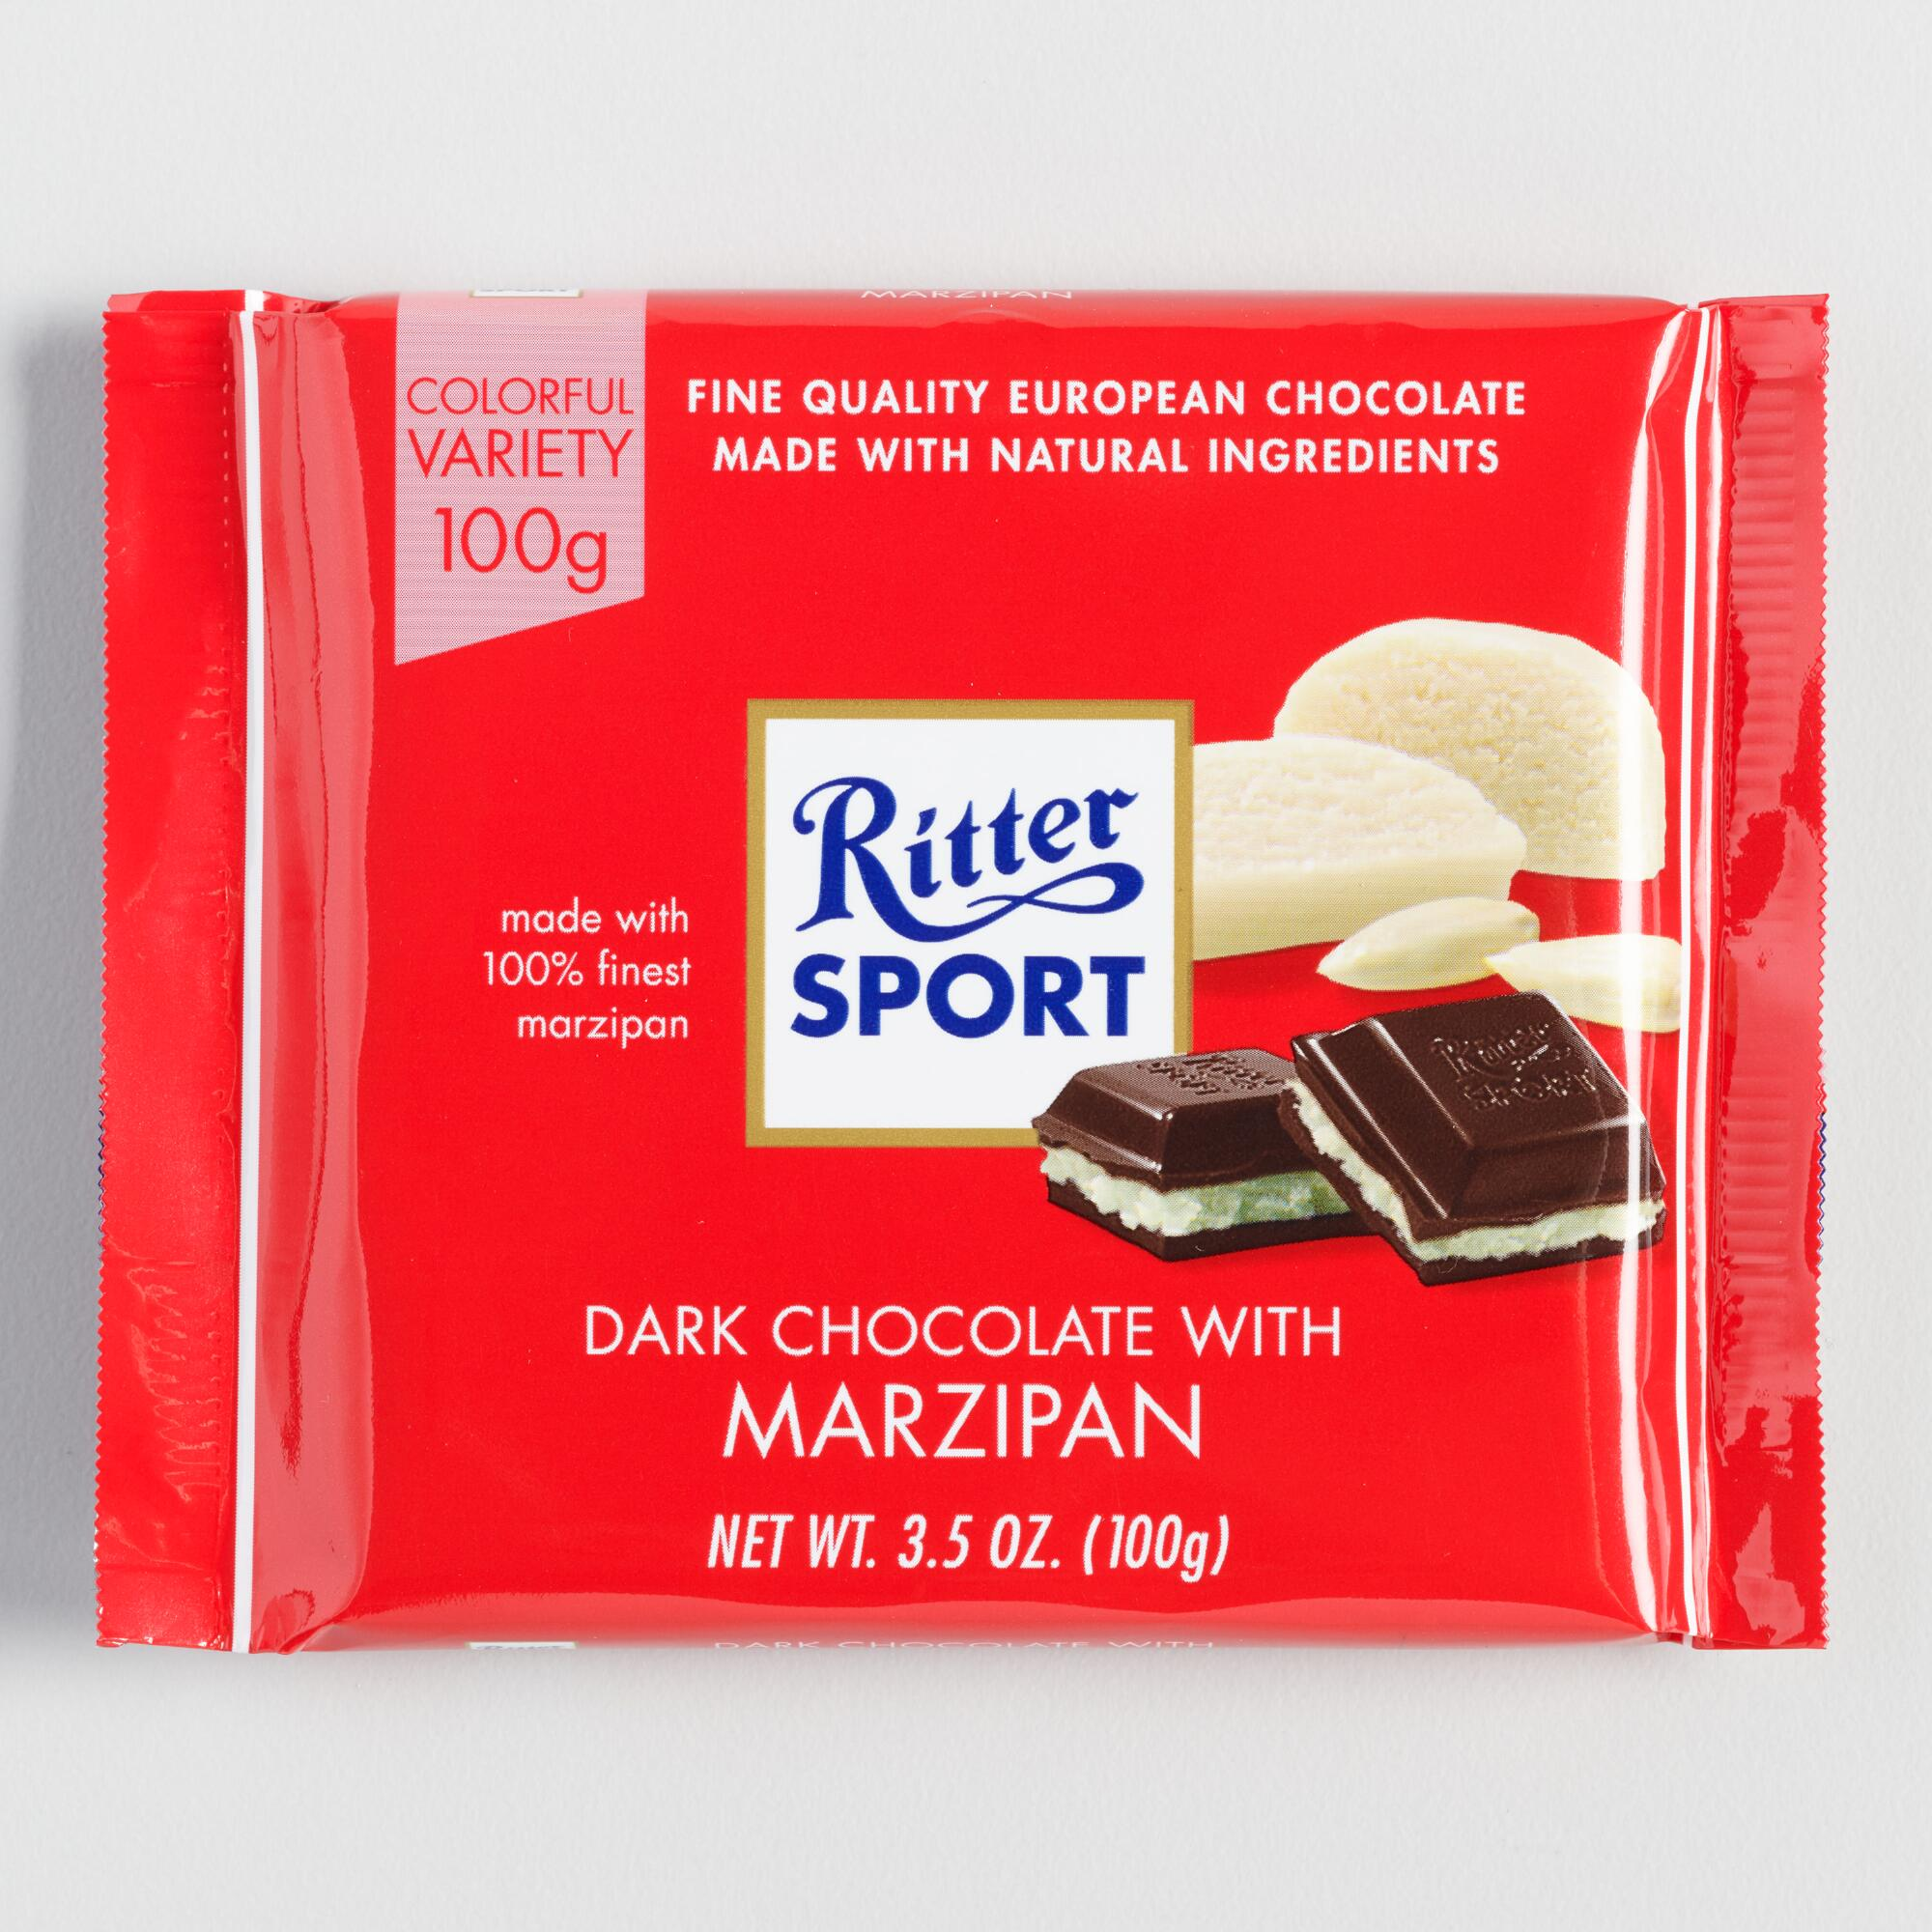 Ritter Sport Dark Chocolate with Marzipan, Set of 12 by